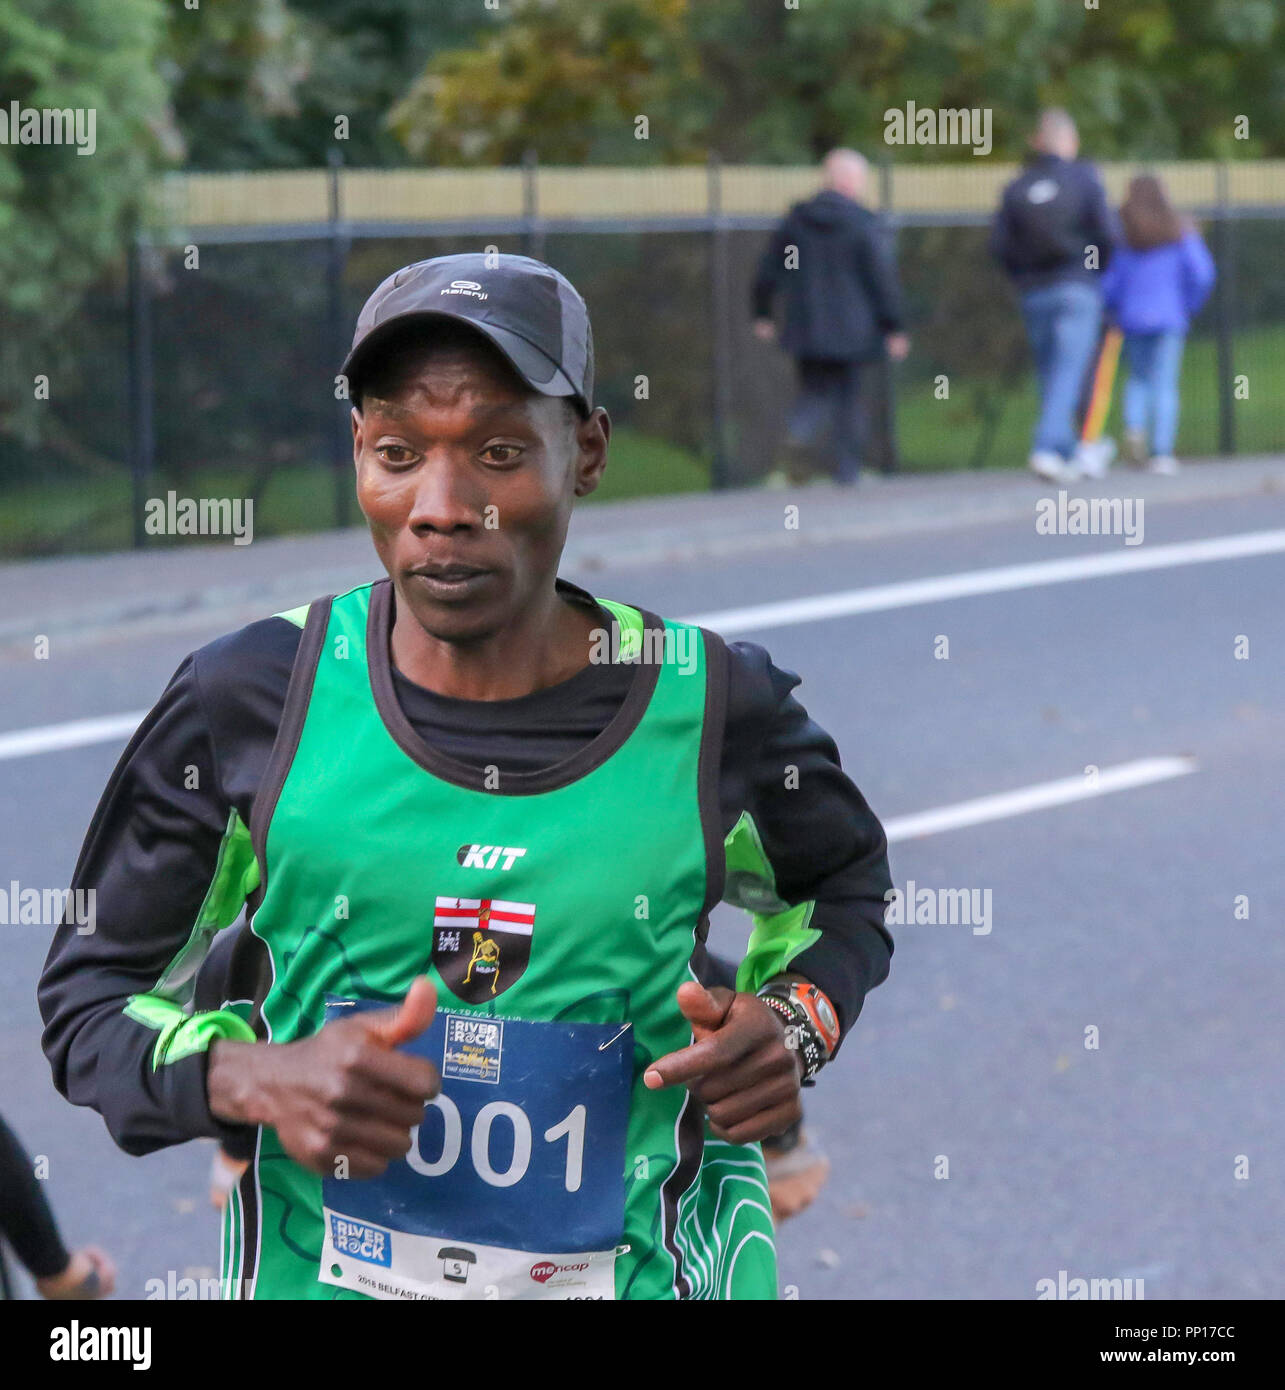 Belfast, Northern Ireland, UK. 23 September 2018. The 2018 Deep RiverRock Belfast City Half Marathon was held in Belfast this morning. The 13.1 mile event attracted more than 4,000 entrants. Gideon Kipsang on his way to winning the race - Kipsang was defending the title. Credit: David Hunter/Alamy Live News. - Stock Image